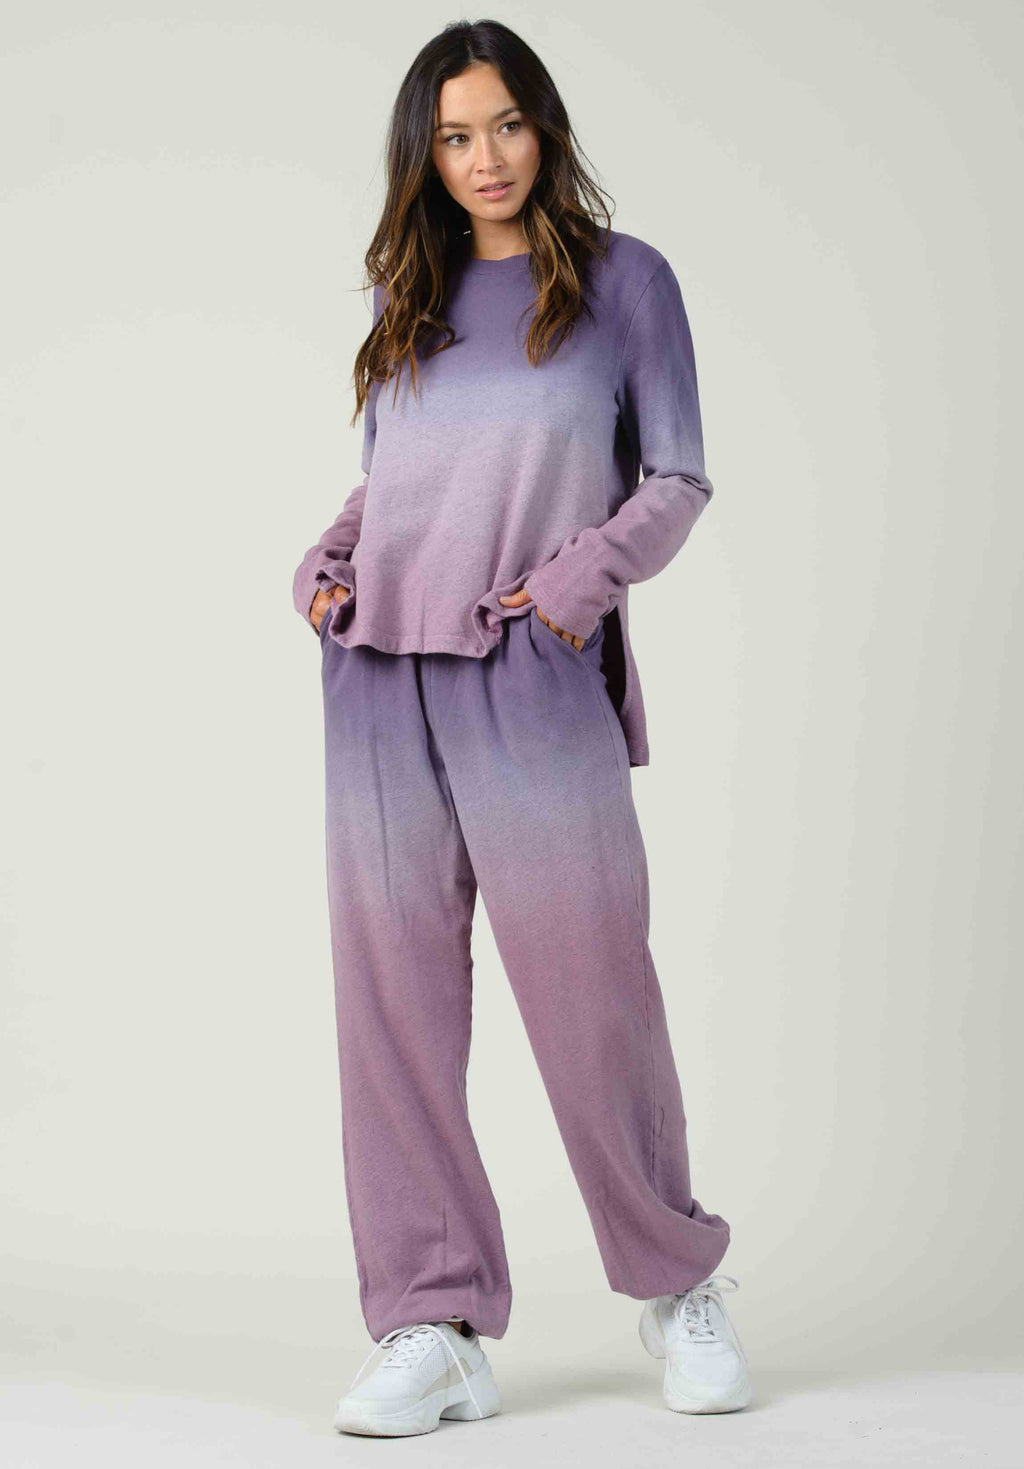 ATHENS SWEATPANTS | PURPLE/PINK OMBRE